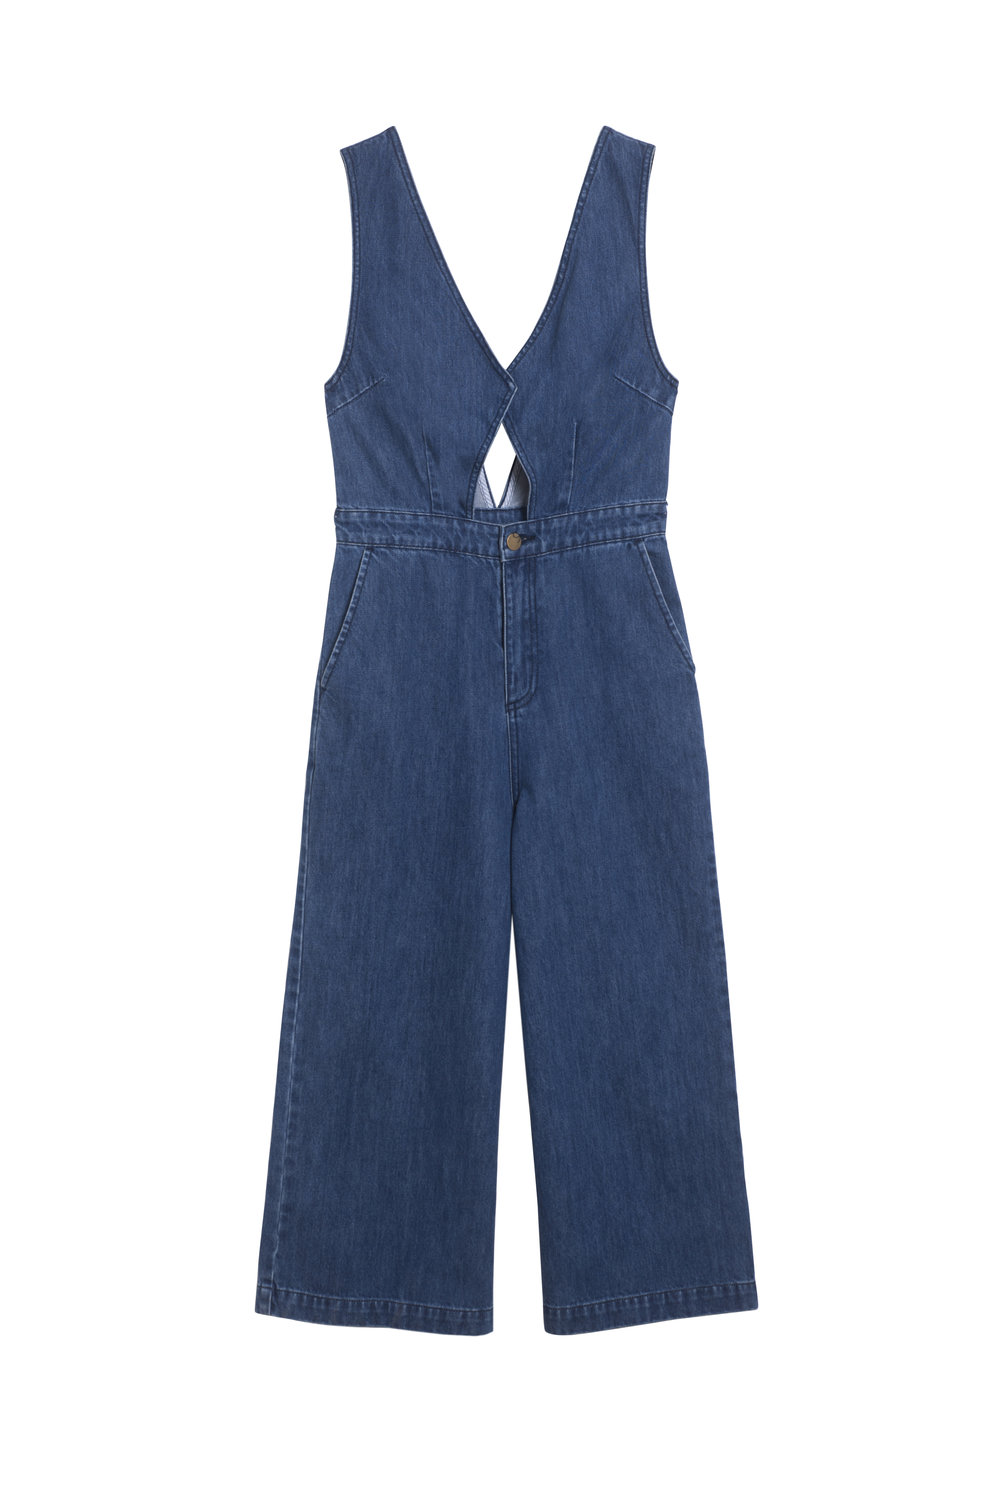 TOBY Denim Jumpsuit - Layer these denim overalls over a turtleneck for a transitional outfit you can wear from brunch with the girls to cocktails with the boy(s). The clean lines flatter any body type and you'll embody the cool and effortless chic lifestyle any Suncoo Girl strives for.